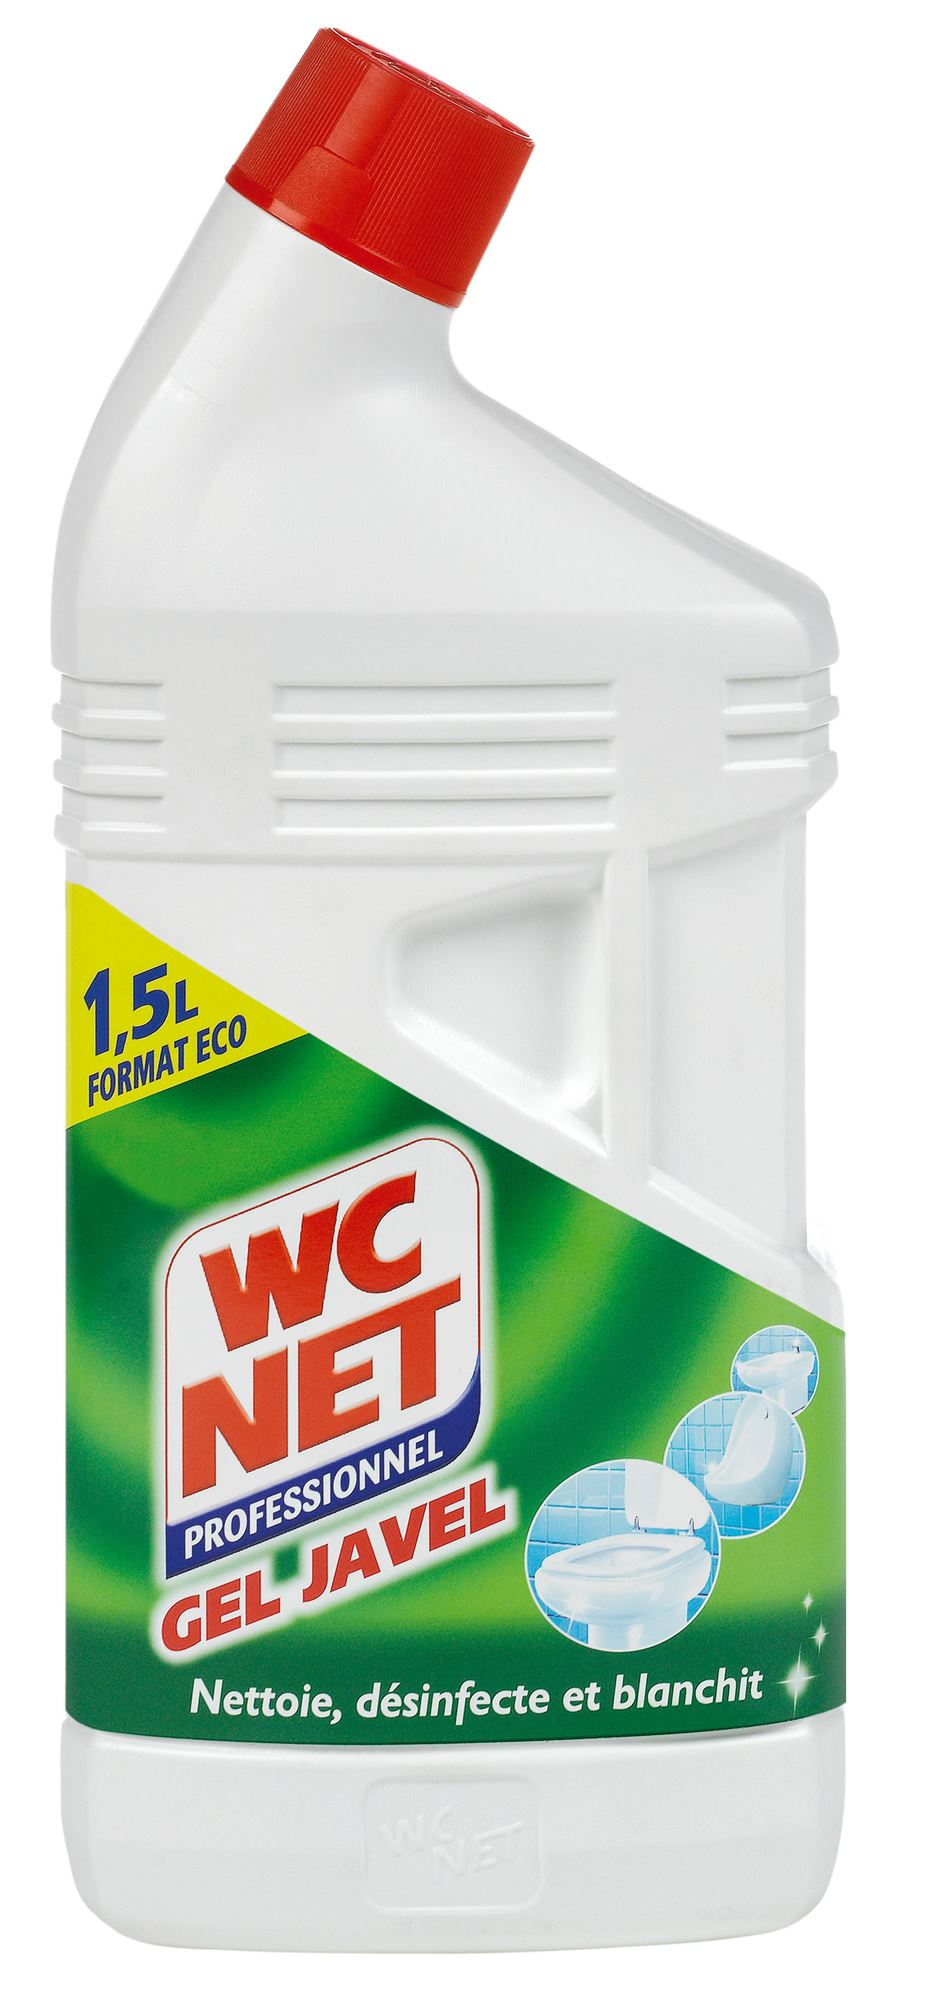 Blanchir Un Parquet À L Eau De Javel net toilet gel javel 1,5l